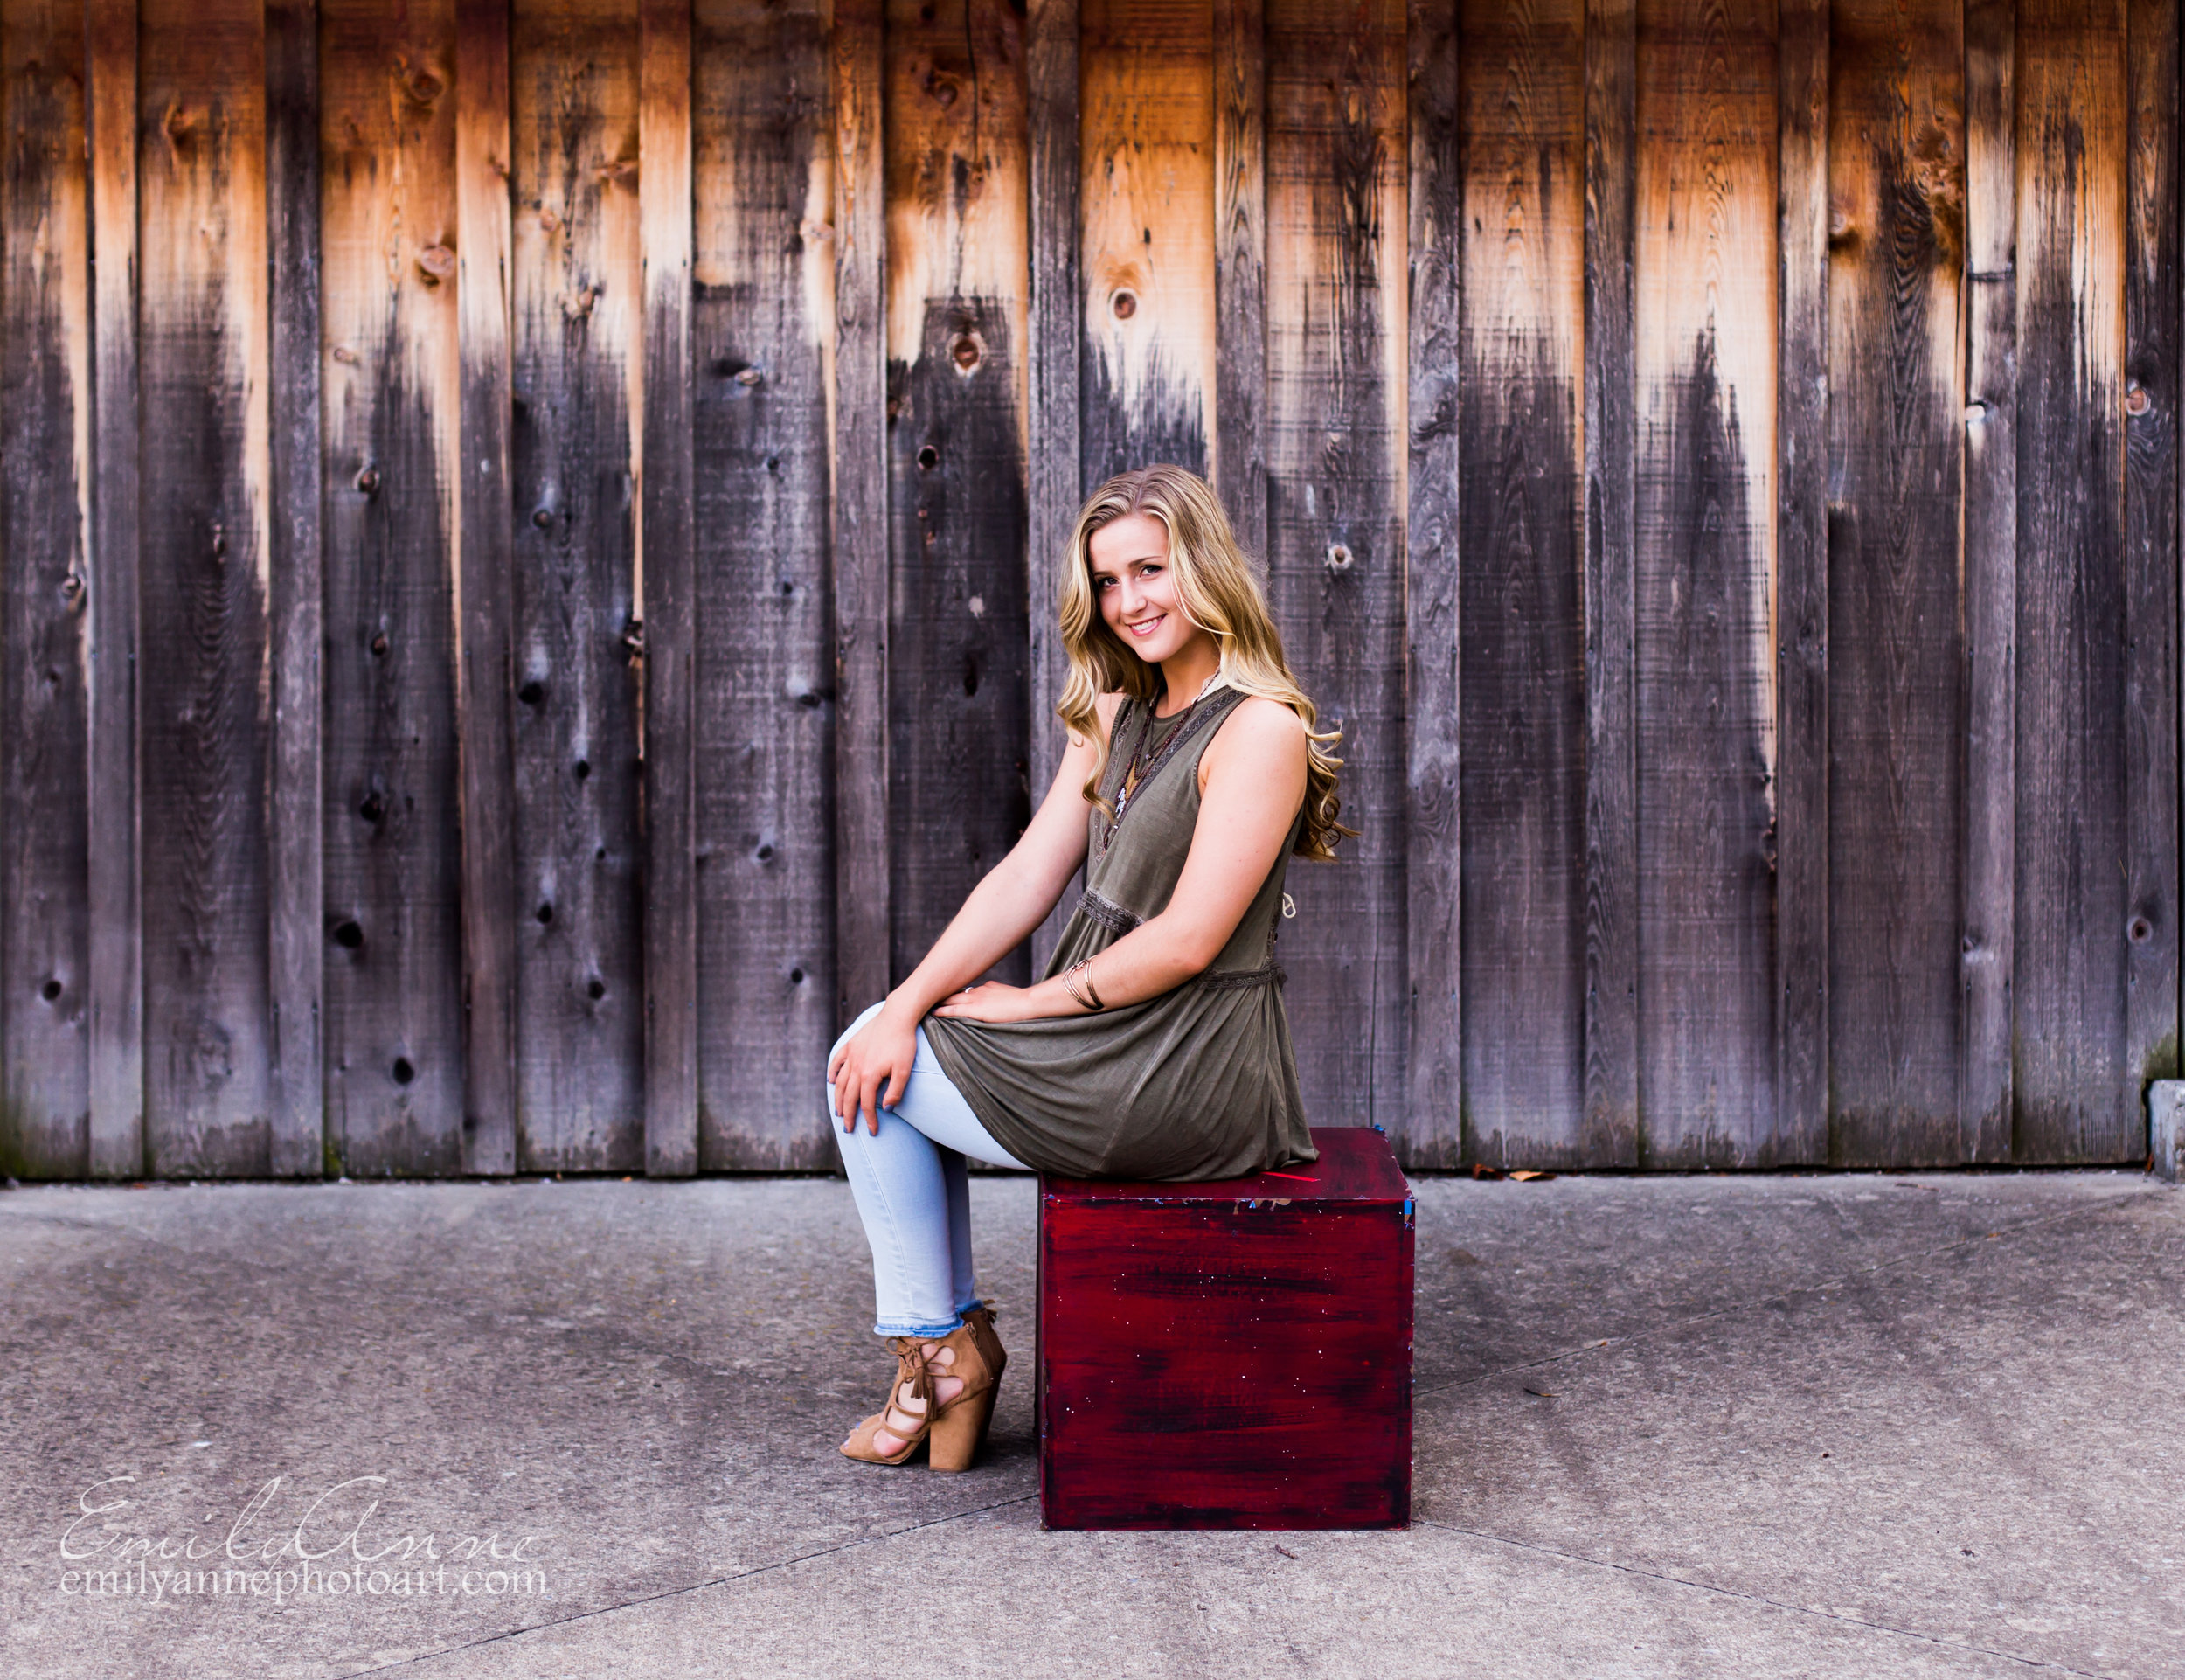 stunning senior portrait photography top senior portrait photographer in nashville tn emily anne photography